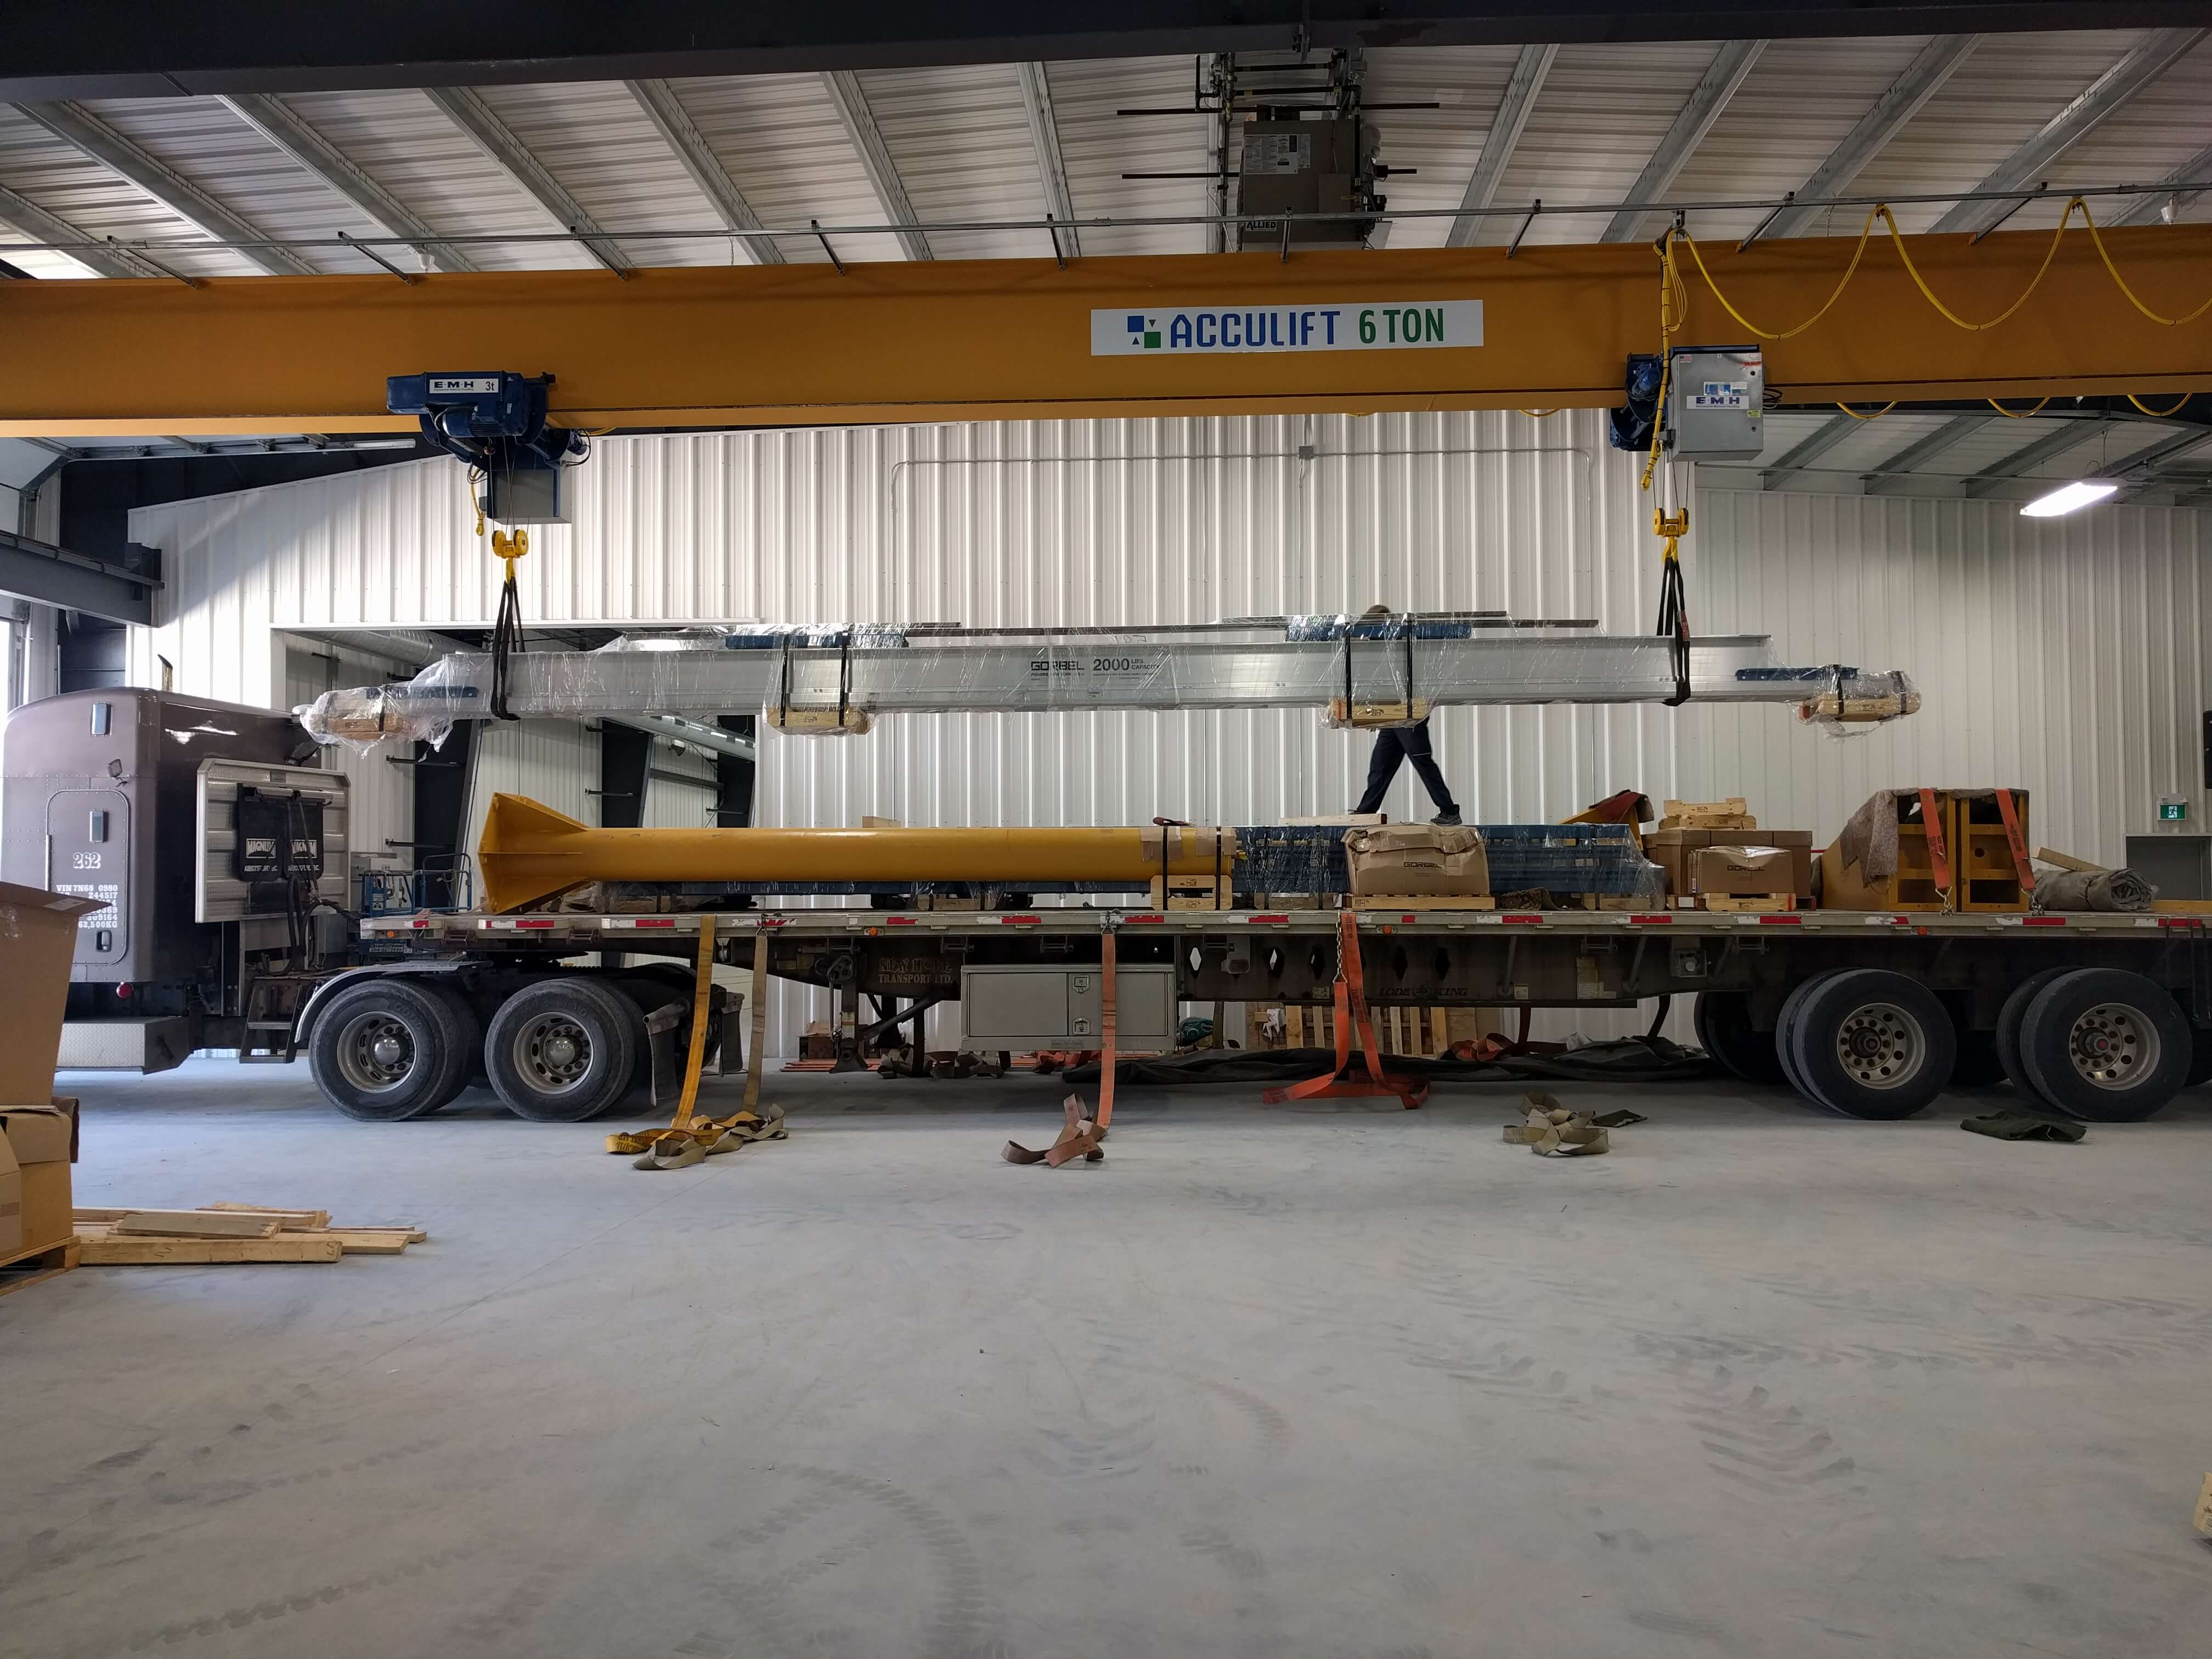 top running bridge crane being delivered and handled by overhead crane.